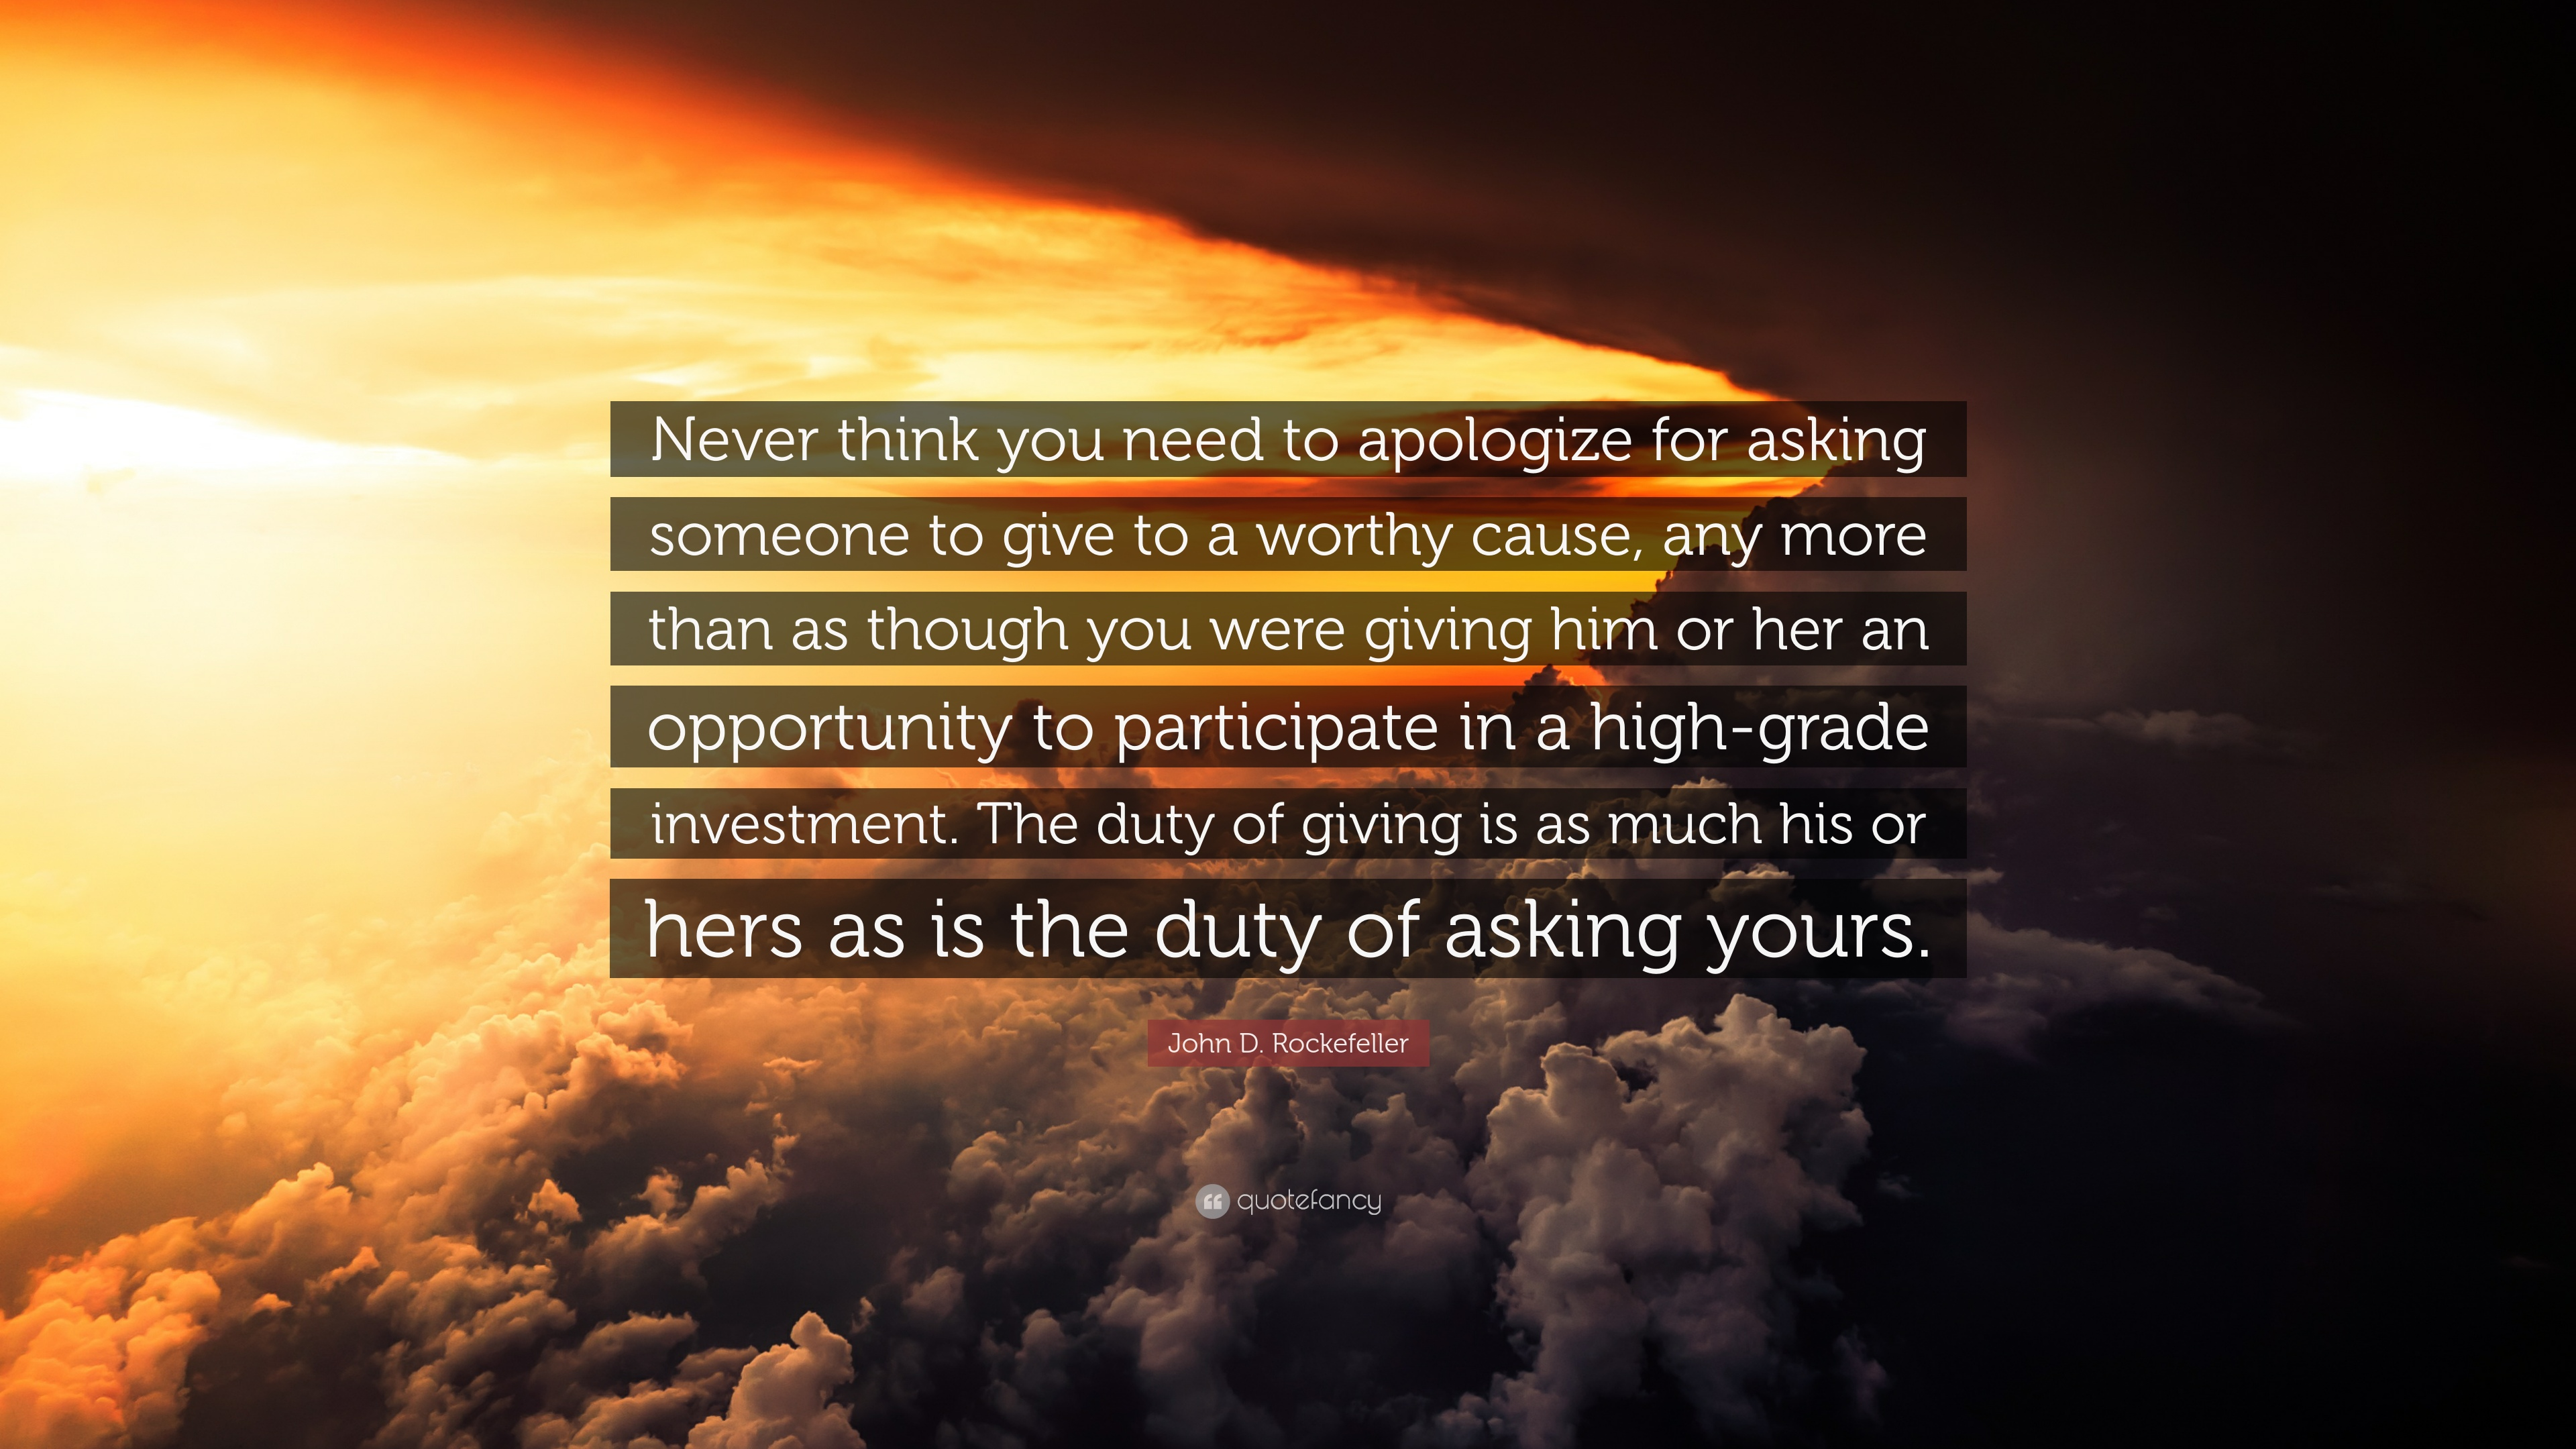 John D Rockefeller Quote Never Think You Need To Apologize For